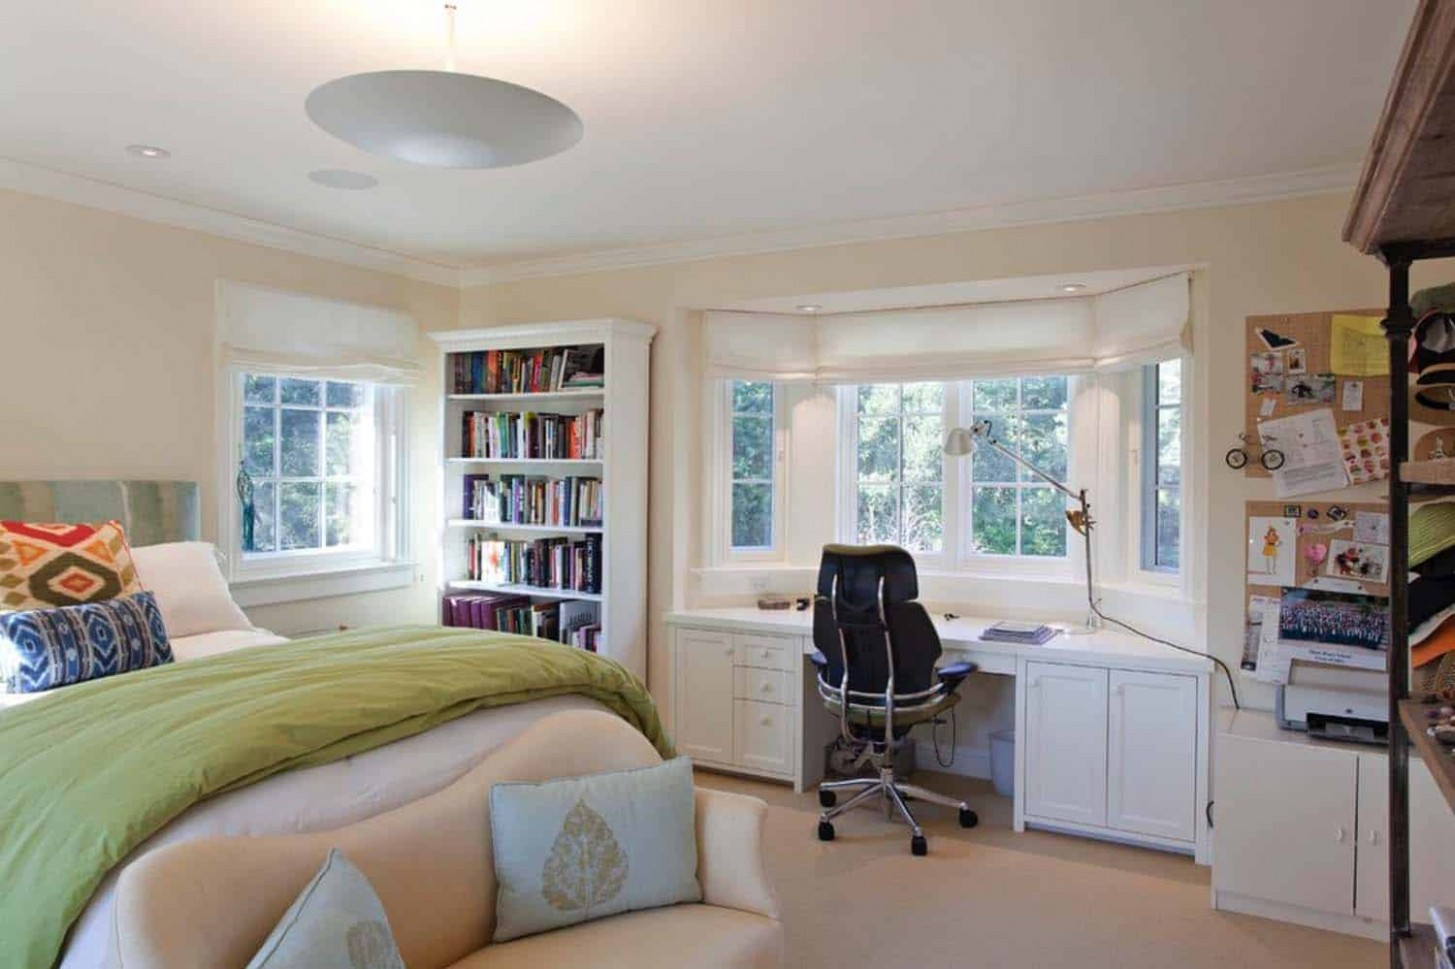 11 Fabulous ideas for a home office in the bedroom - Home Office Ideas Bedroom